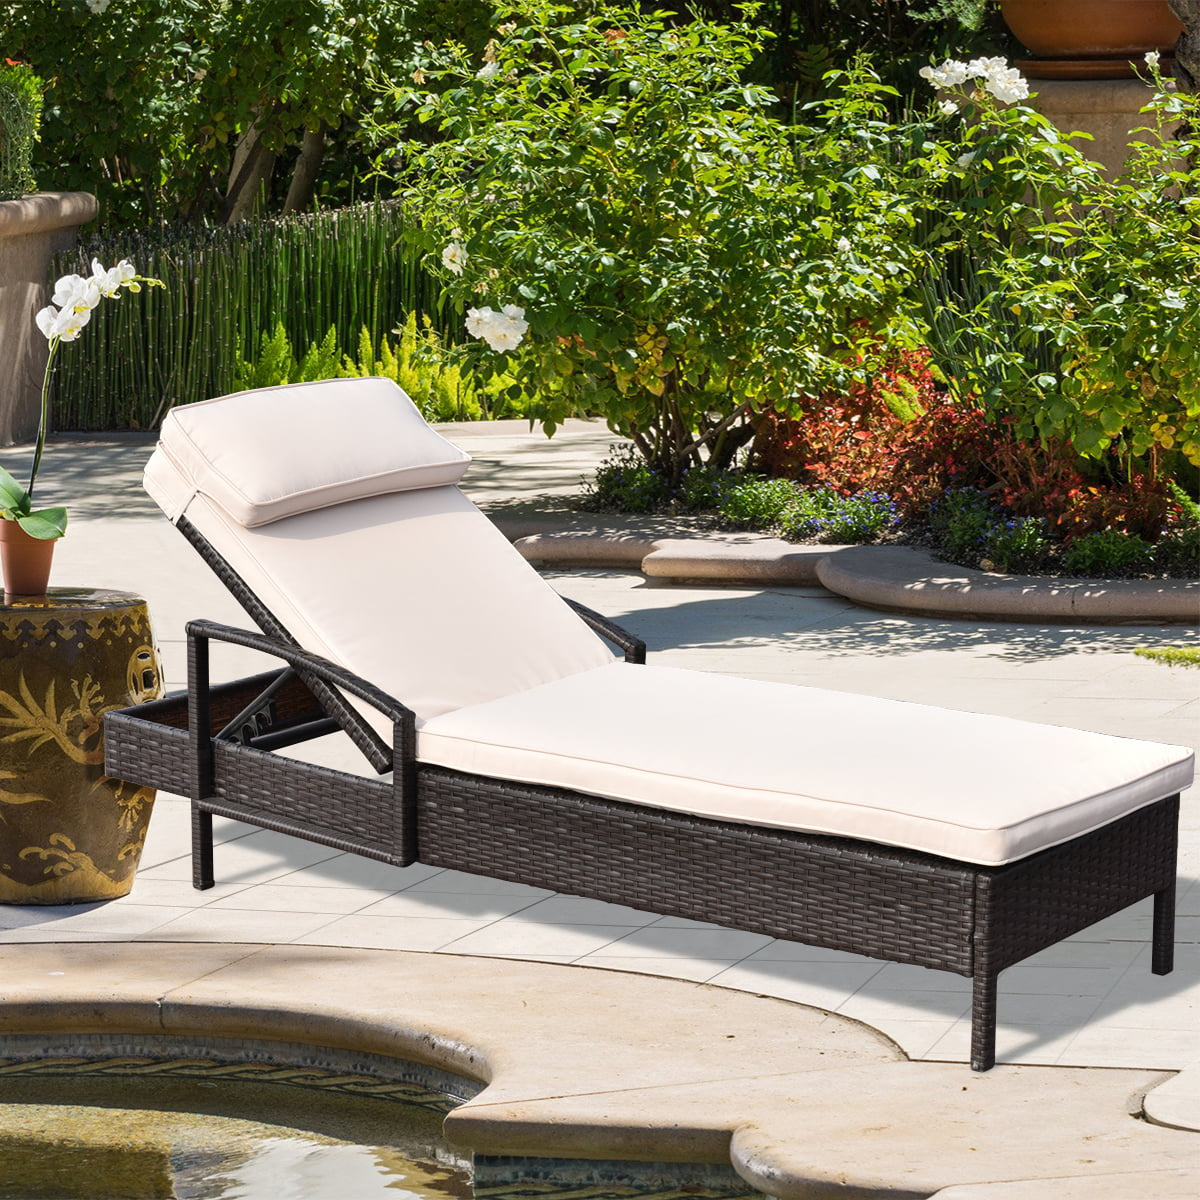 Incroyable Costway Chaise Lounge Chair Brown Outdoor Wicker Rattan Couch Patio  Furniture W/Pillow